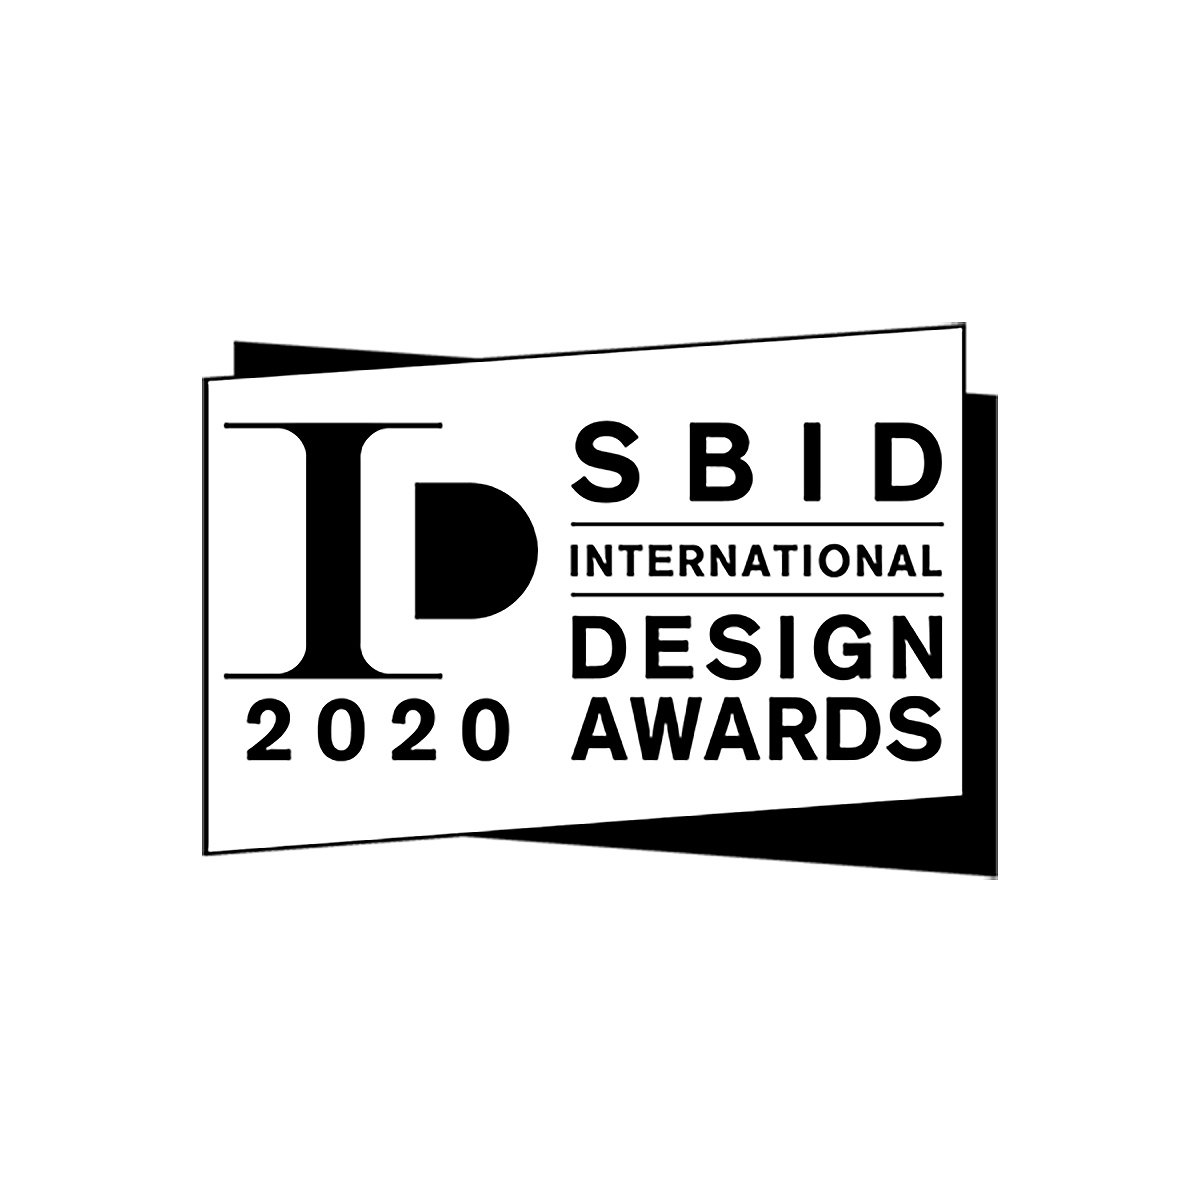 SBID International Design Awards 2020